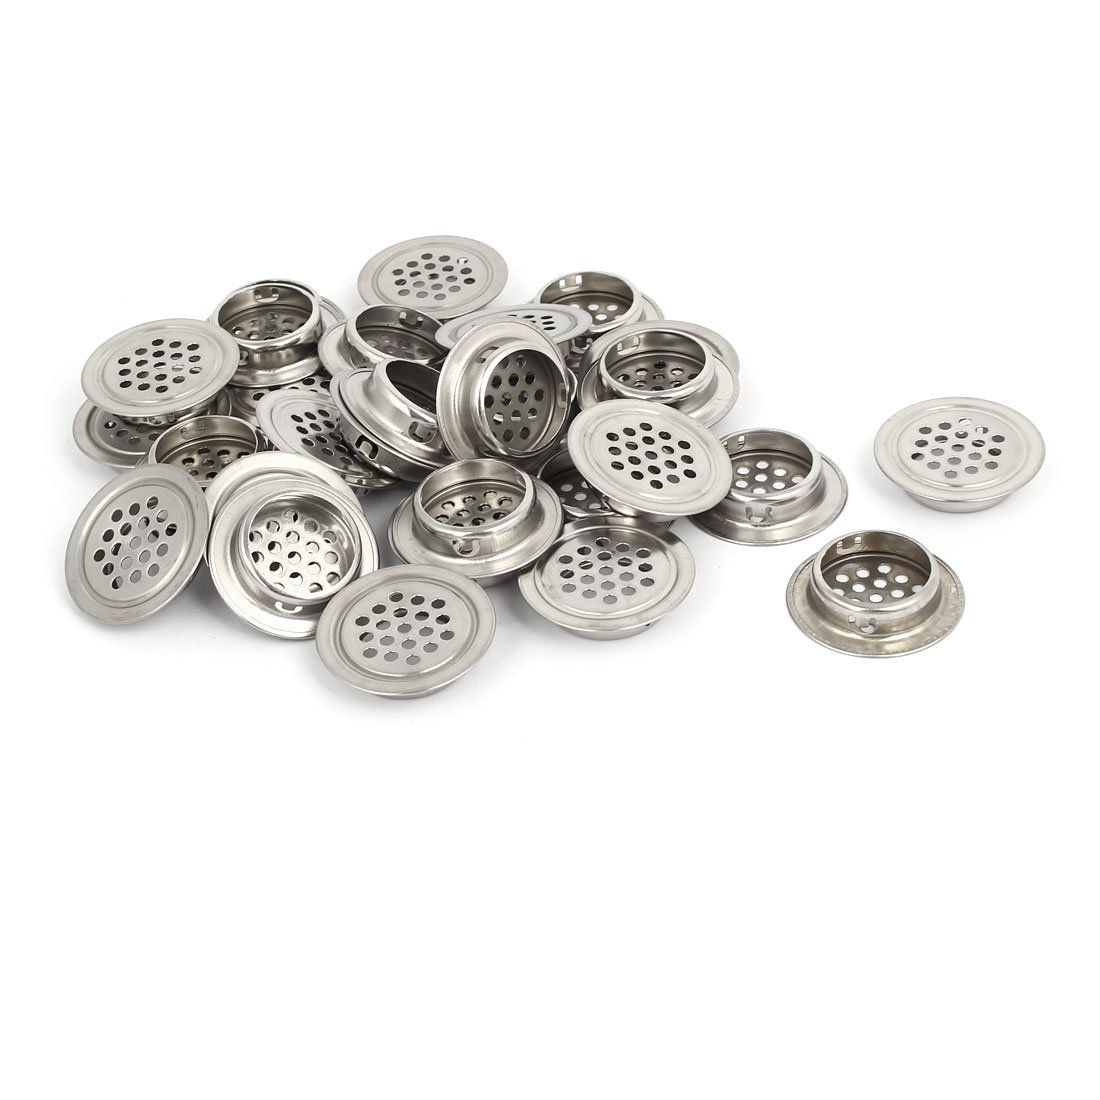 uxcell 28.5mm Bottom Dia Stainless Steel Round Shaped Mesh Hole Air Vent Louver 30pcs